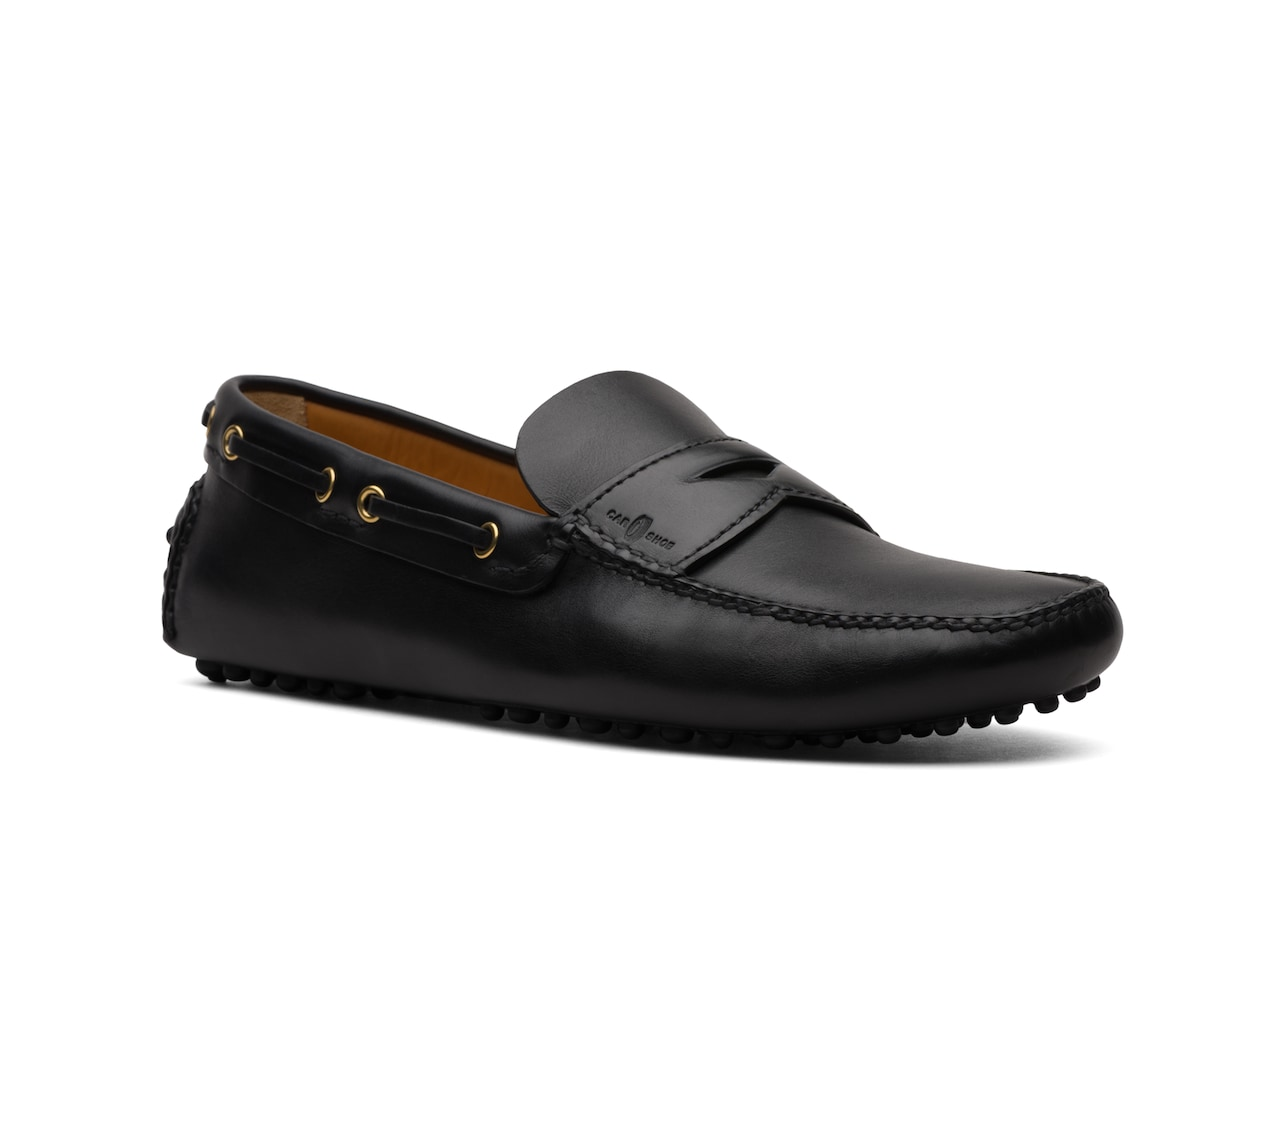 SOFT CALF DRIVING SHOES BLACK